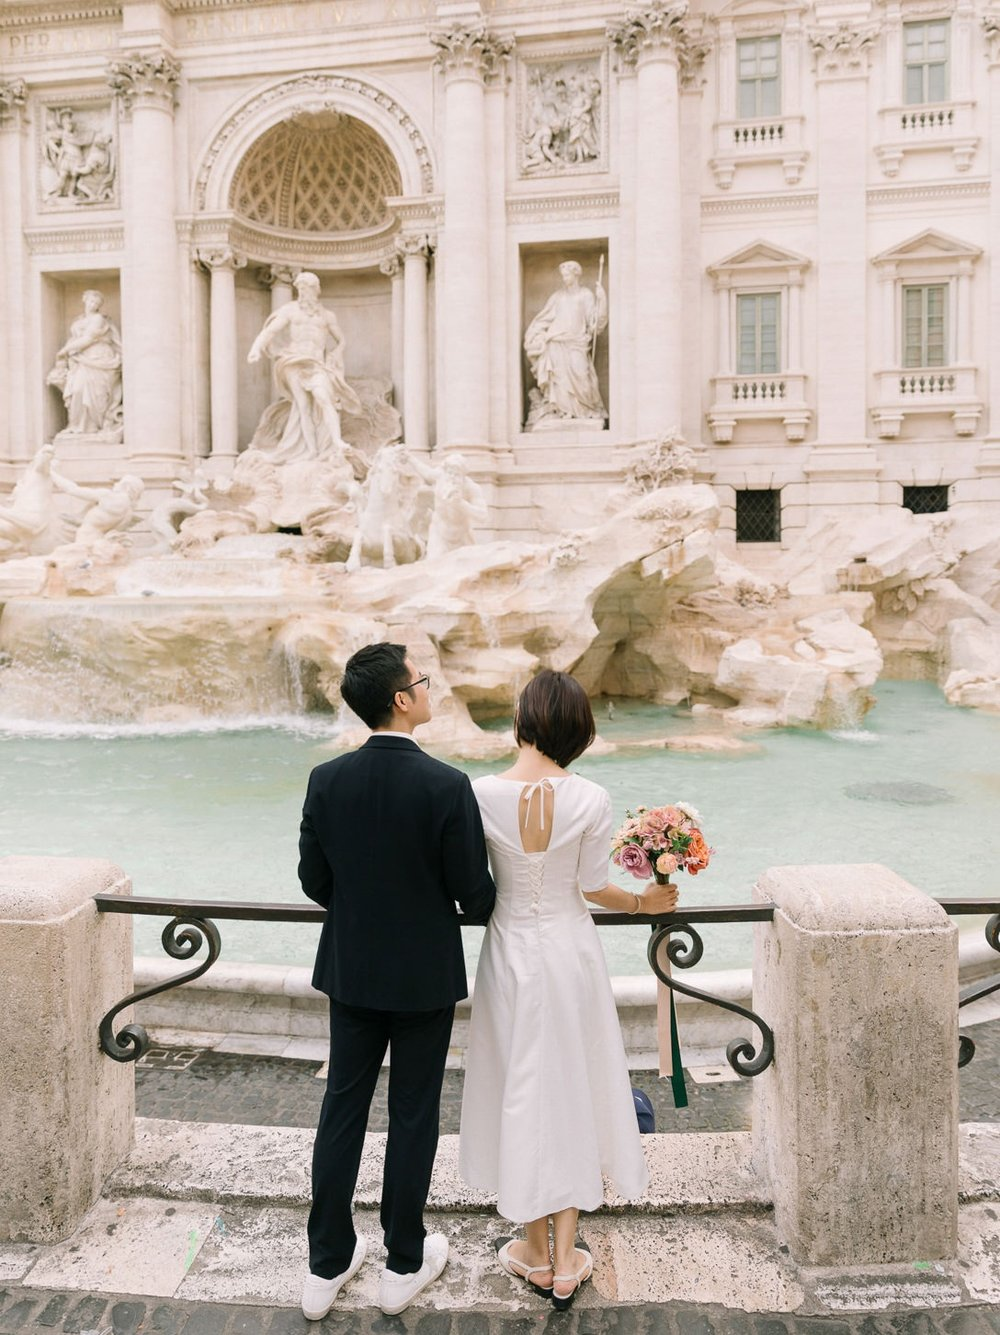 003_rome_engagement_prewedding_session_chymo_more_photography.jpg